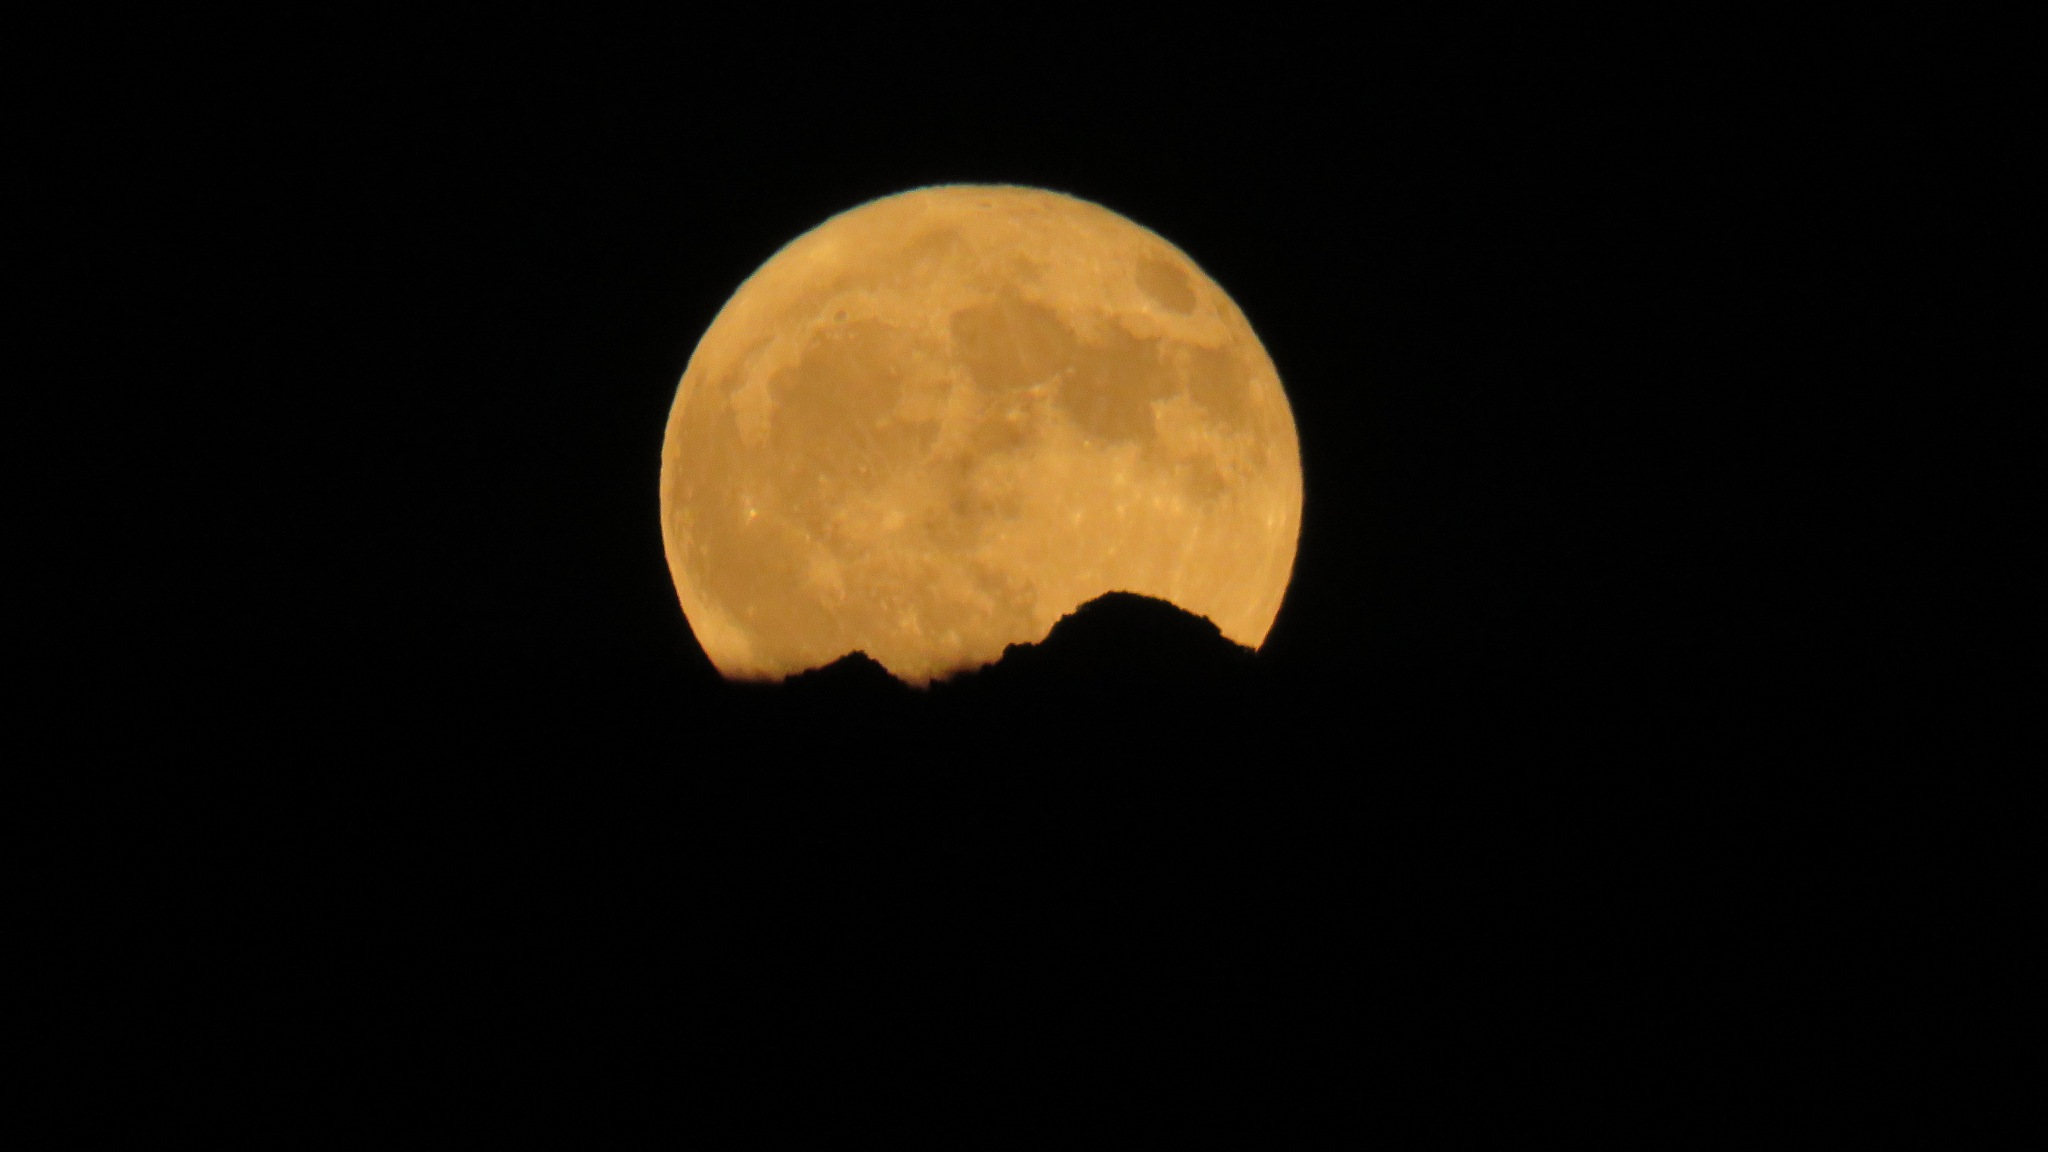 Harvest moon by Terry Smith